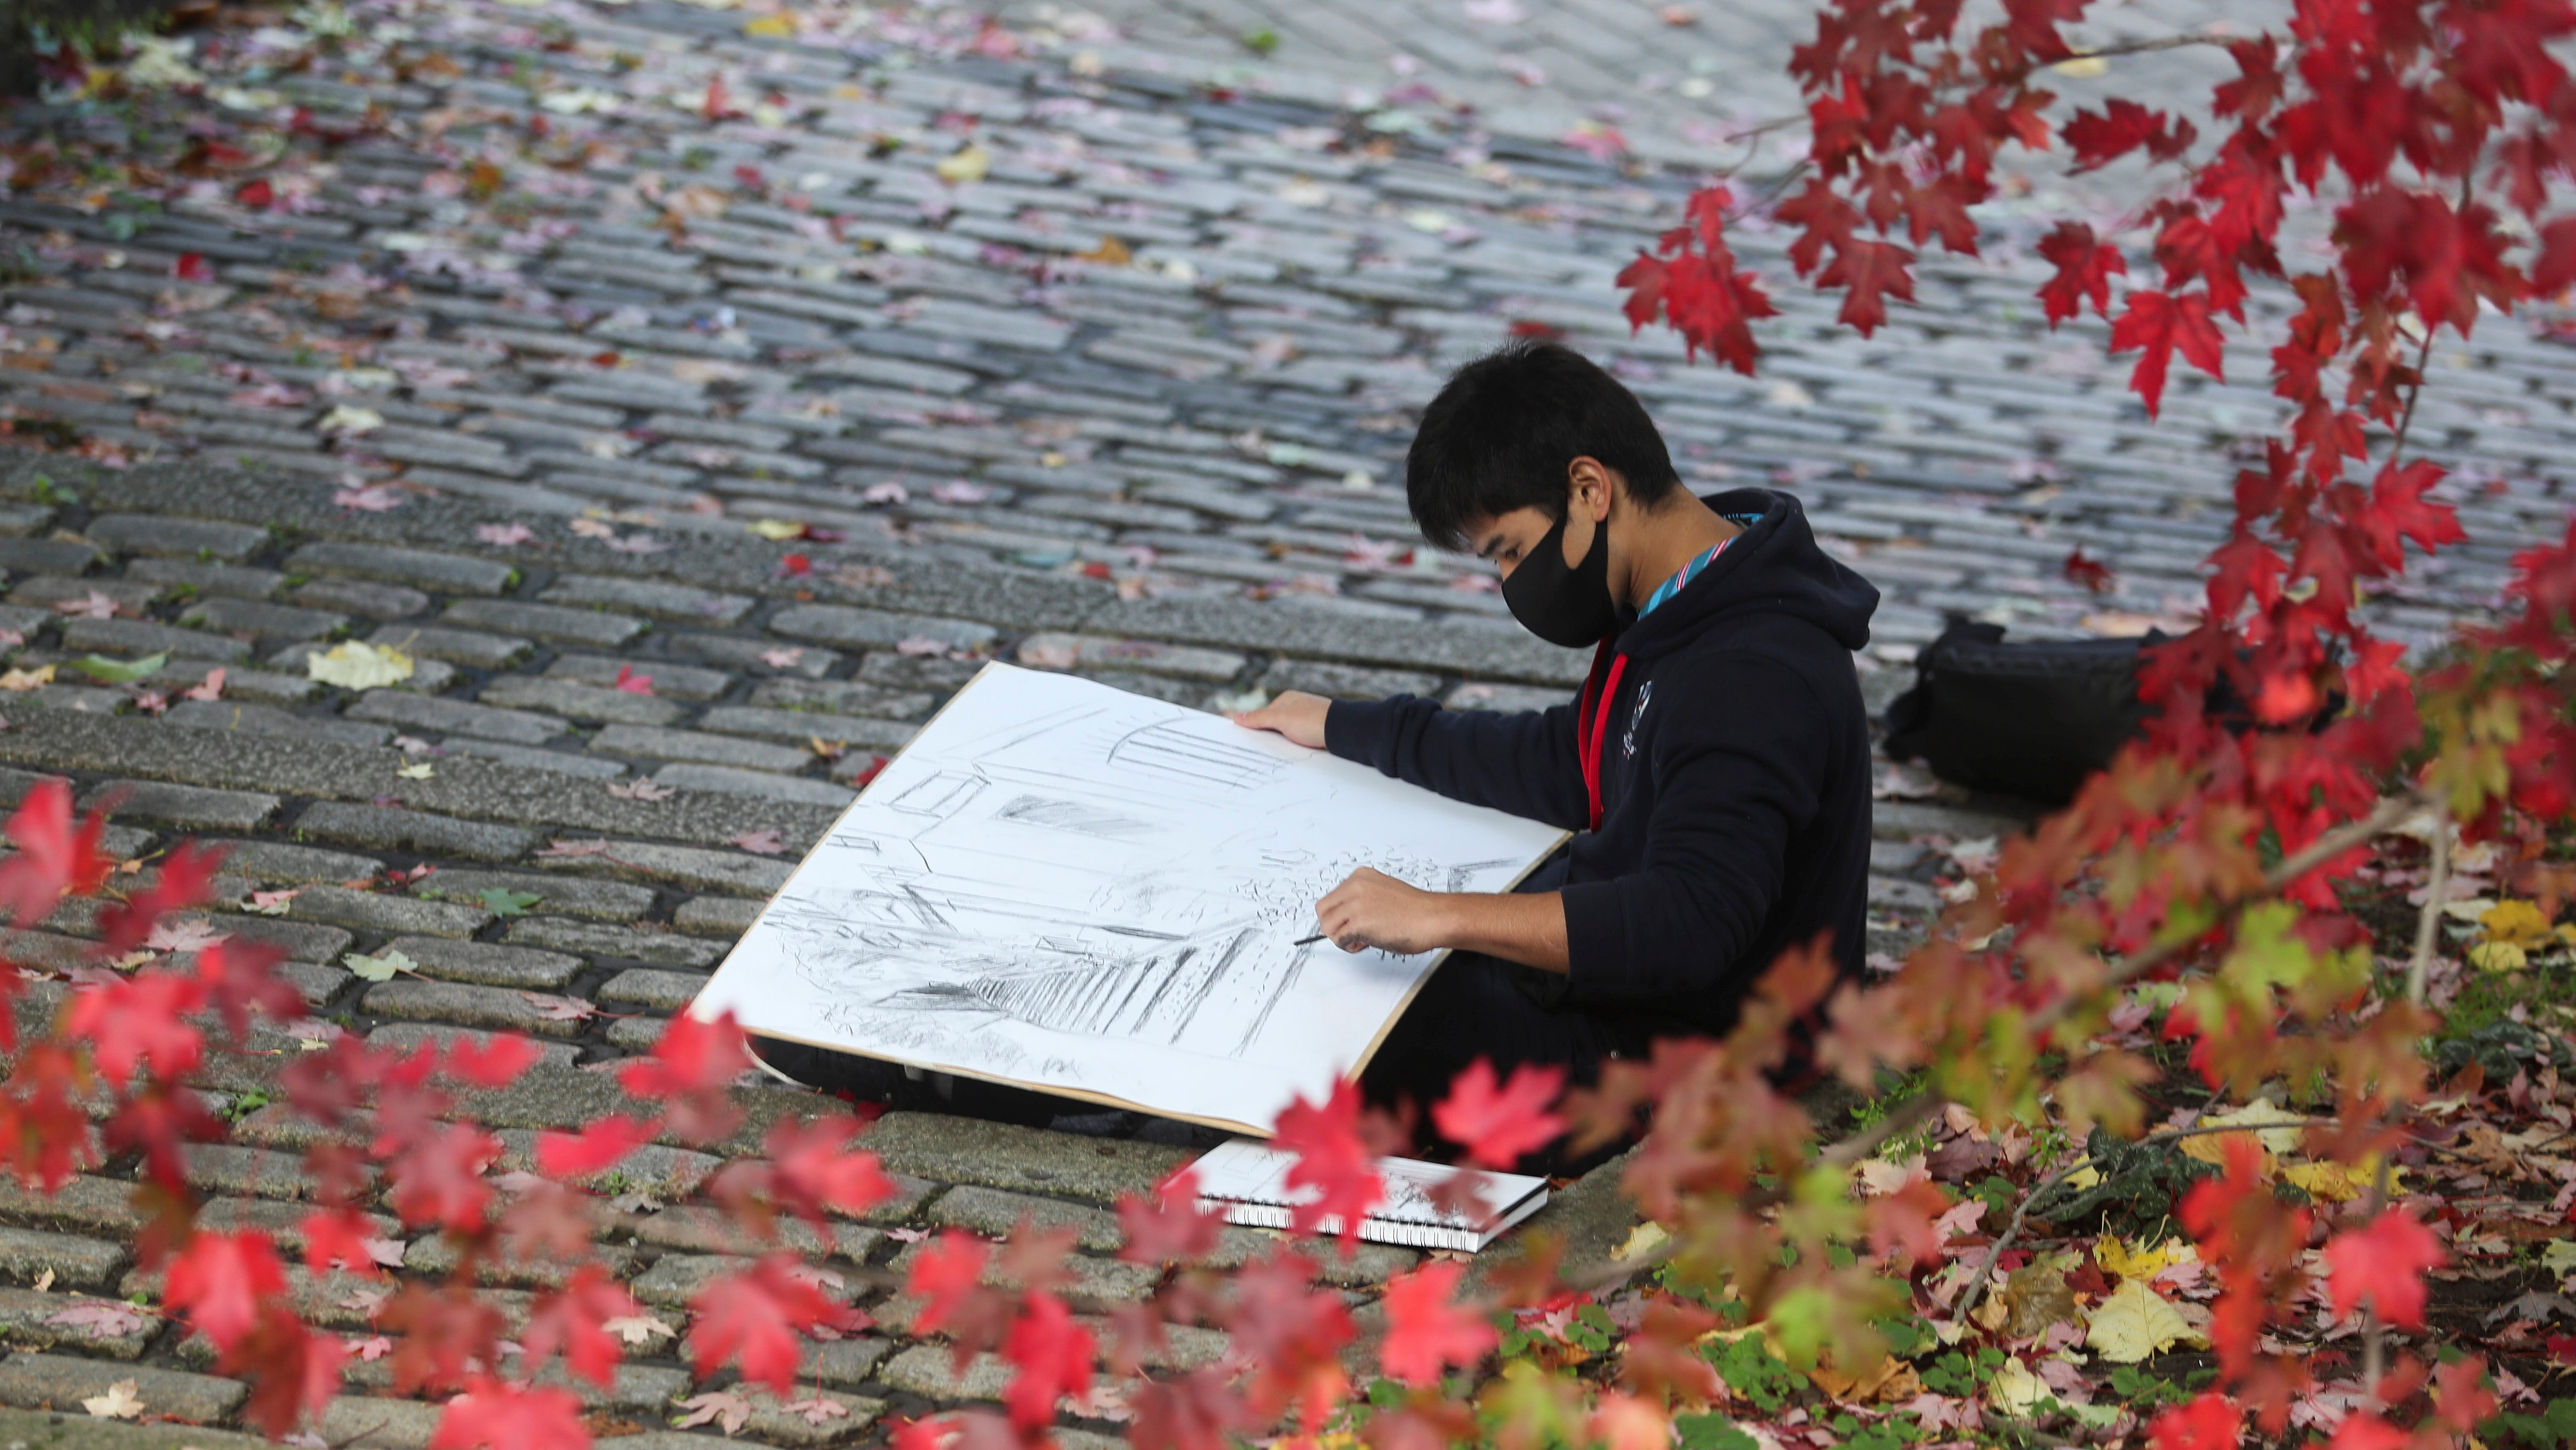 First year architecture student Shuntaro Moyiyama from Japan draws during his first contact with the Newcastle University since he joins over a week ago at Quayside in Newcastle, Britain October 14, 2020. REUTERS/Lee Smith